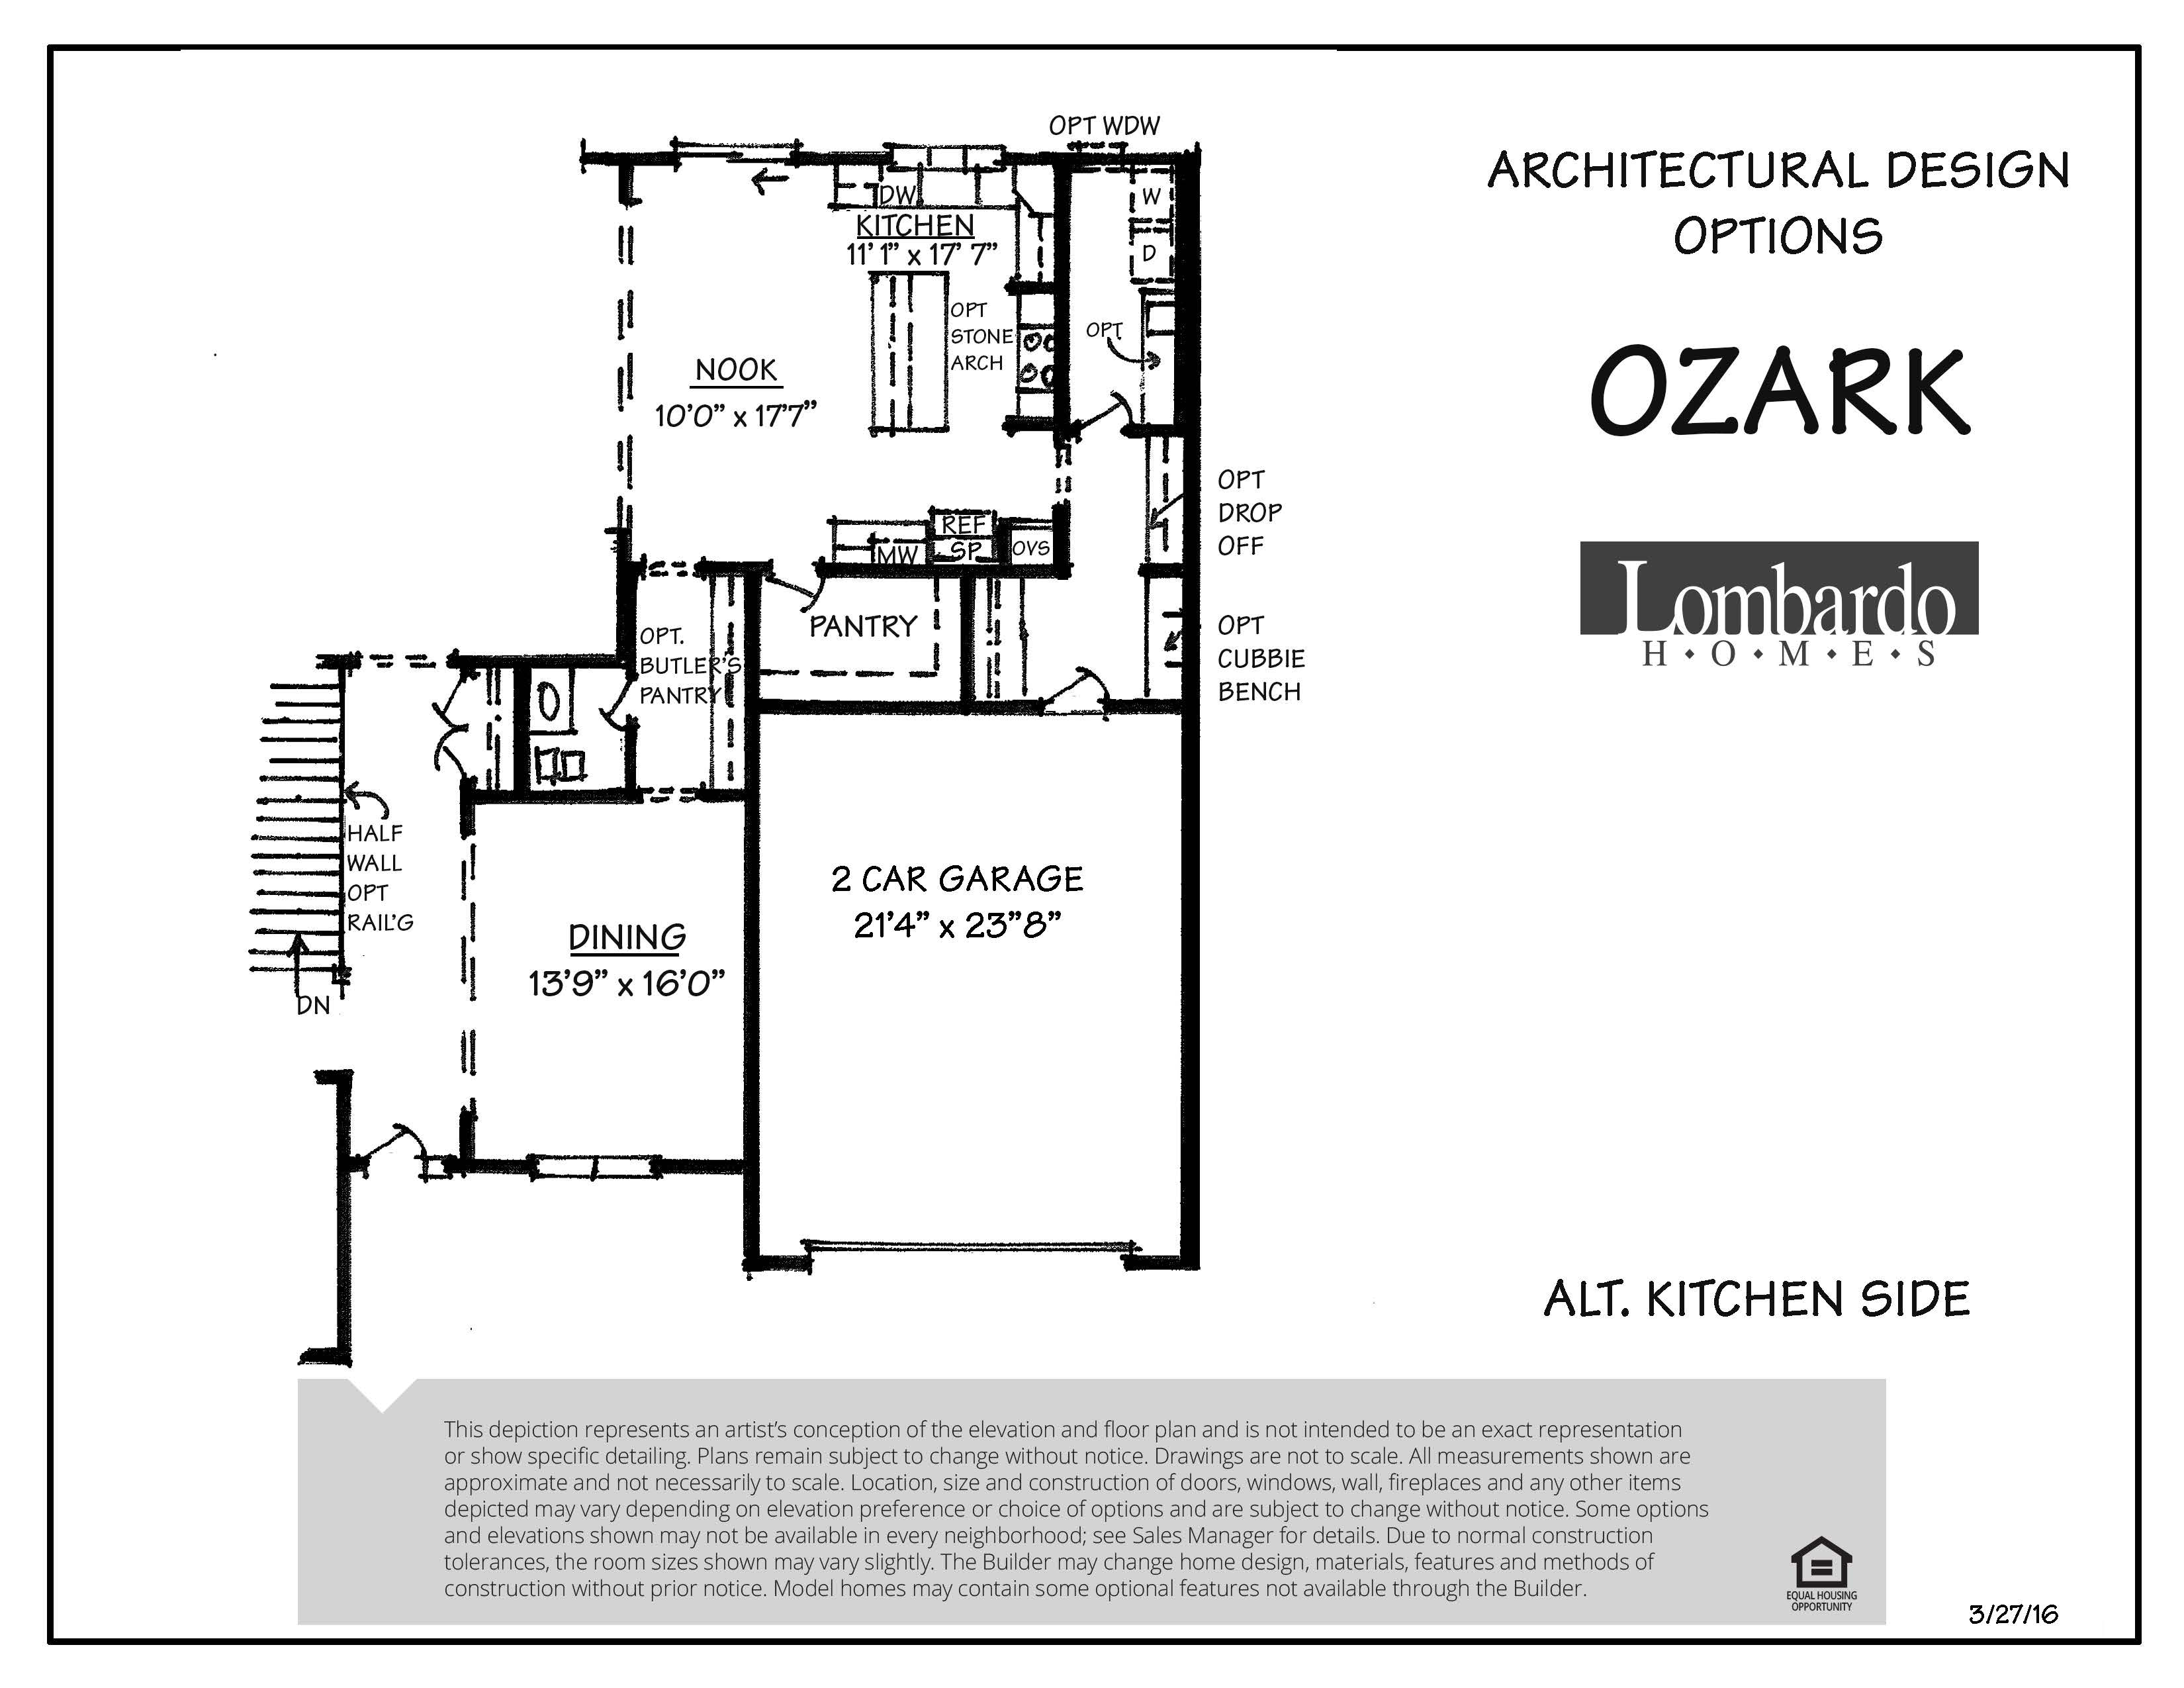 ADO Ozark Alt Kitchen Side